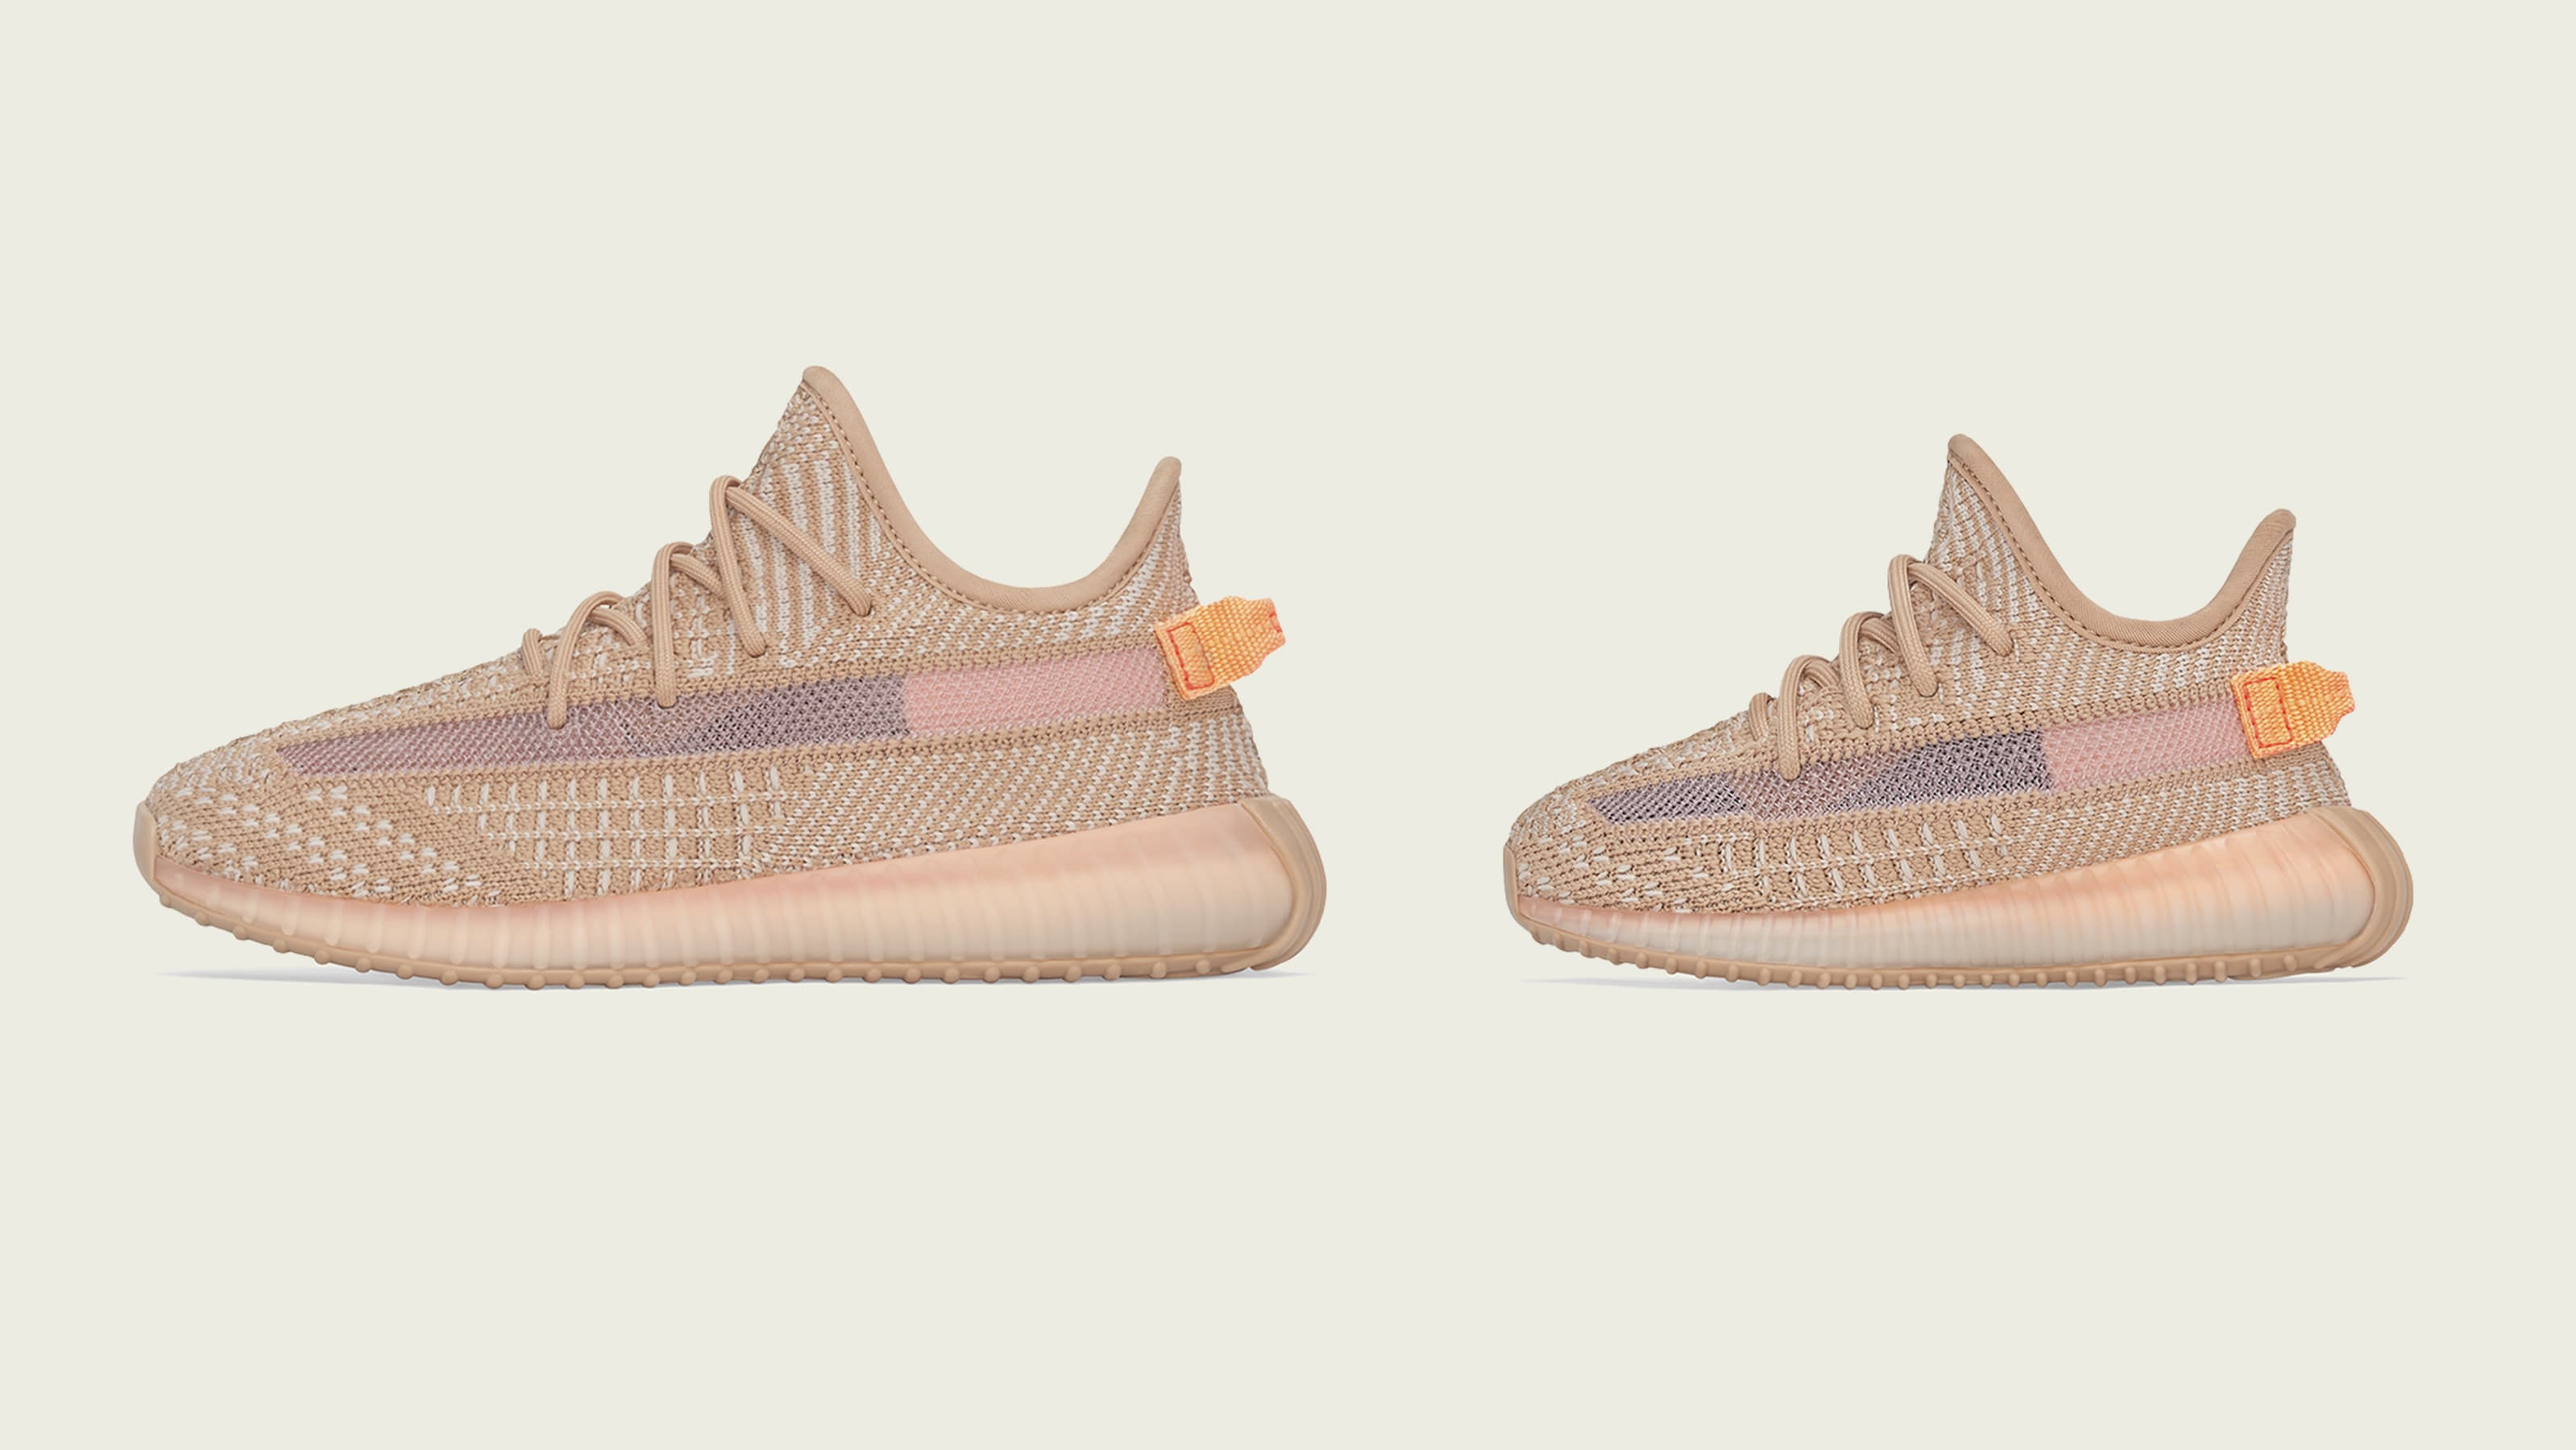 Adidas Yeezy Boost 350 V2 'Clay' Kids (Lateral)